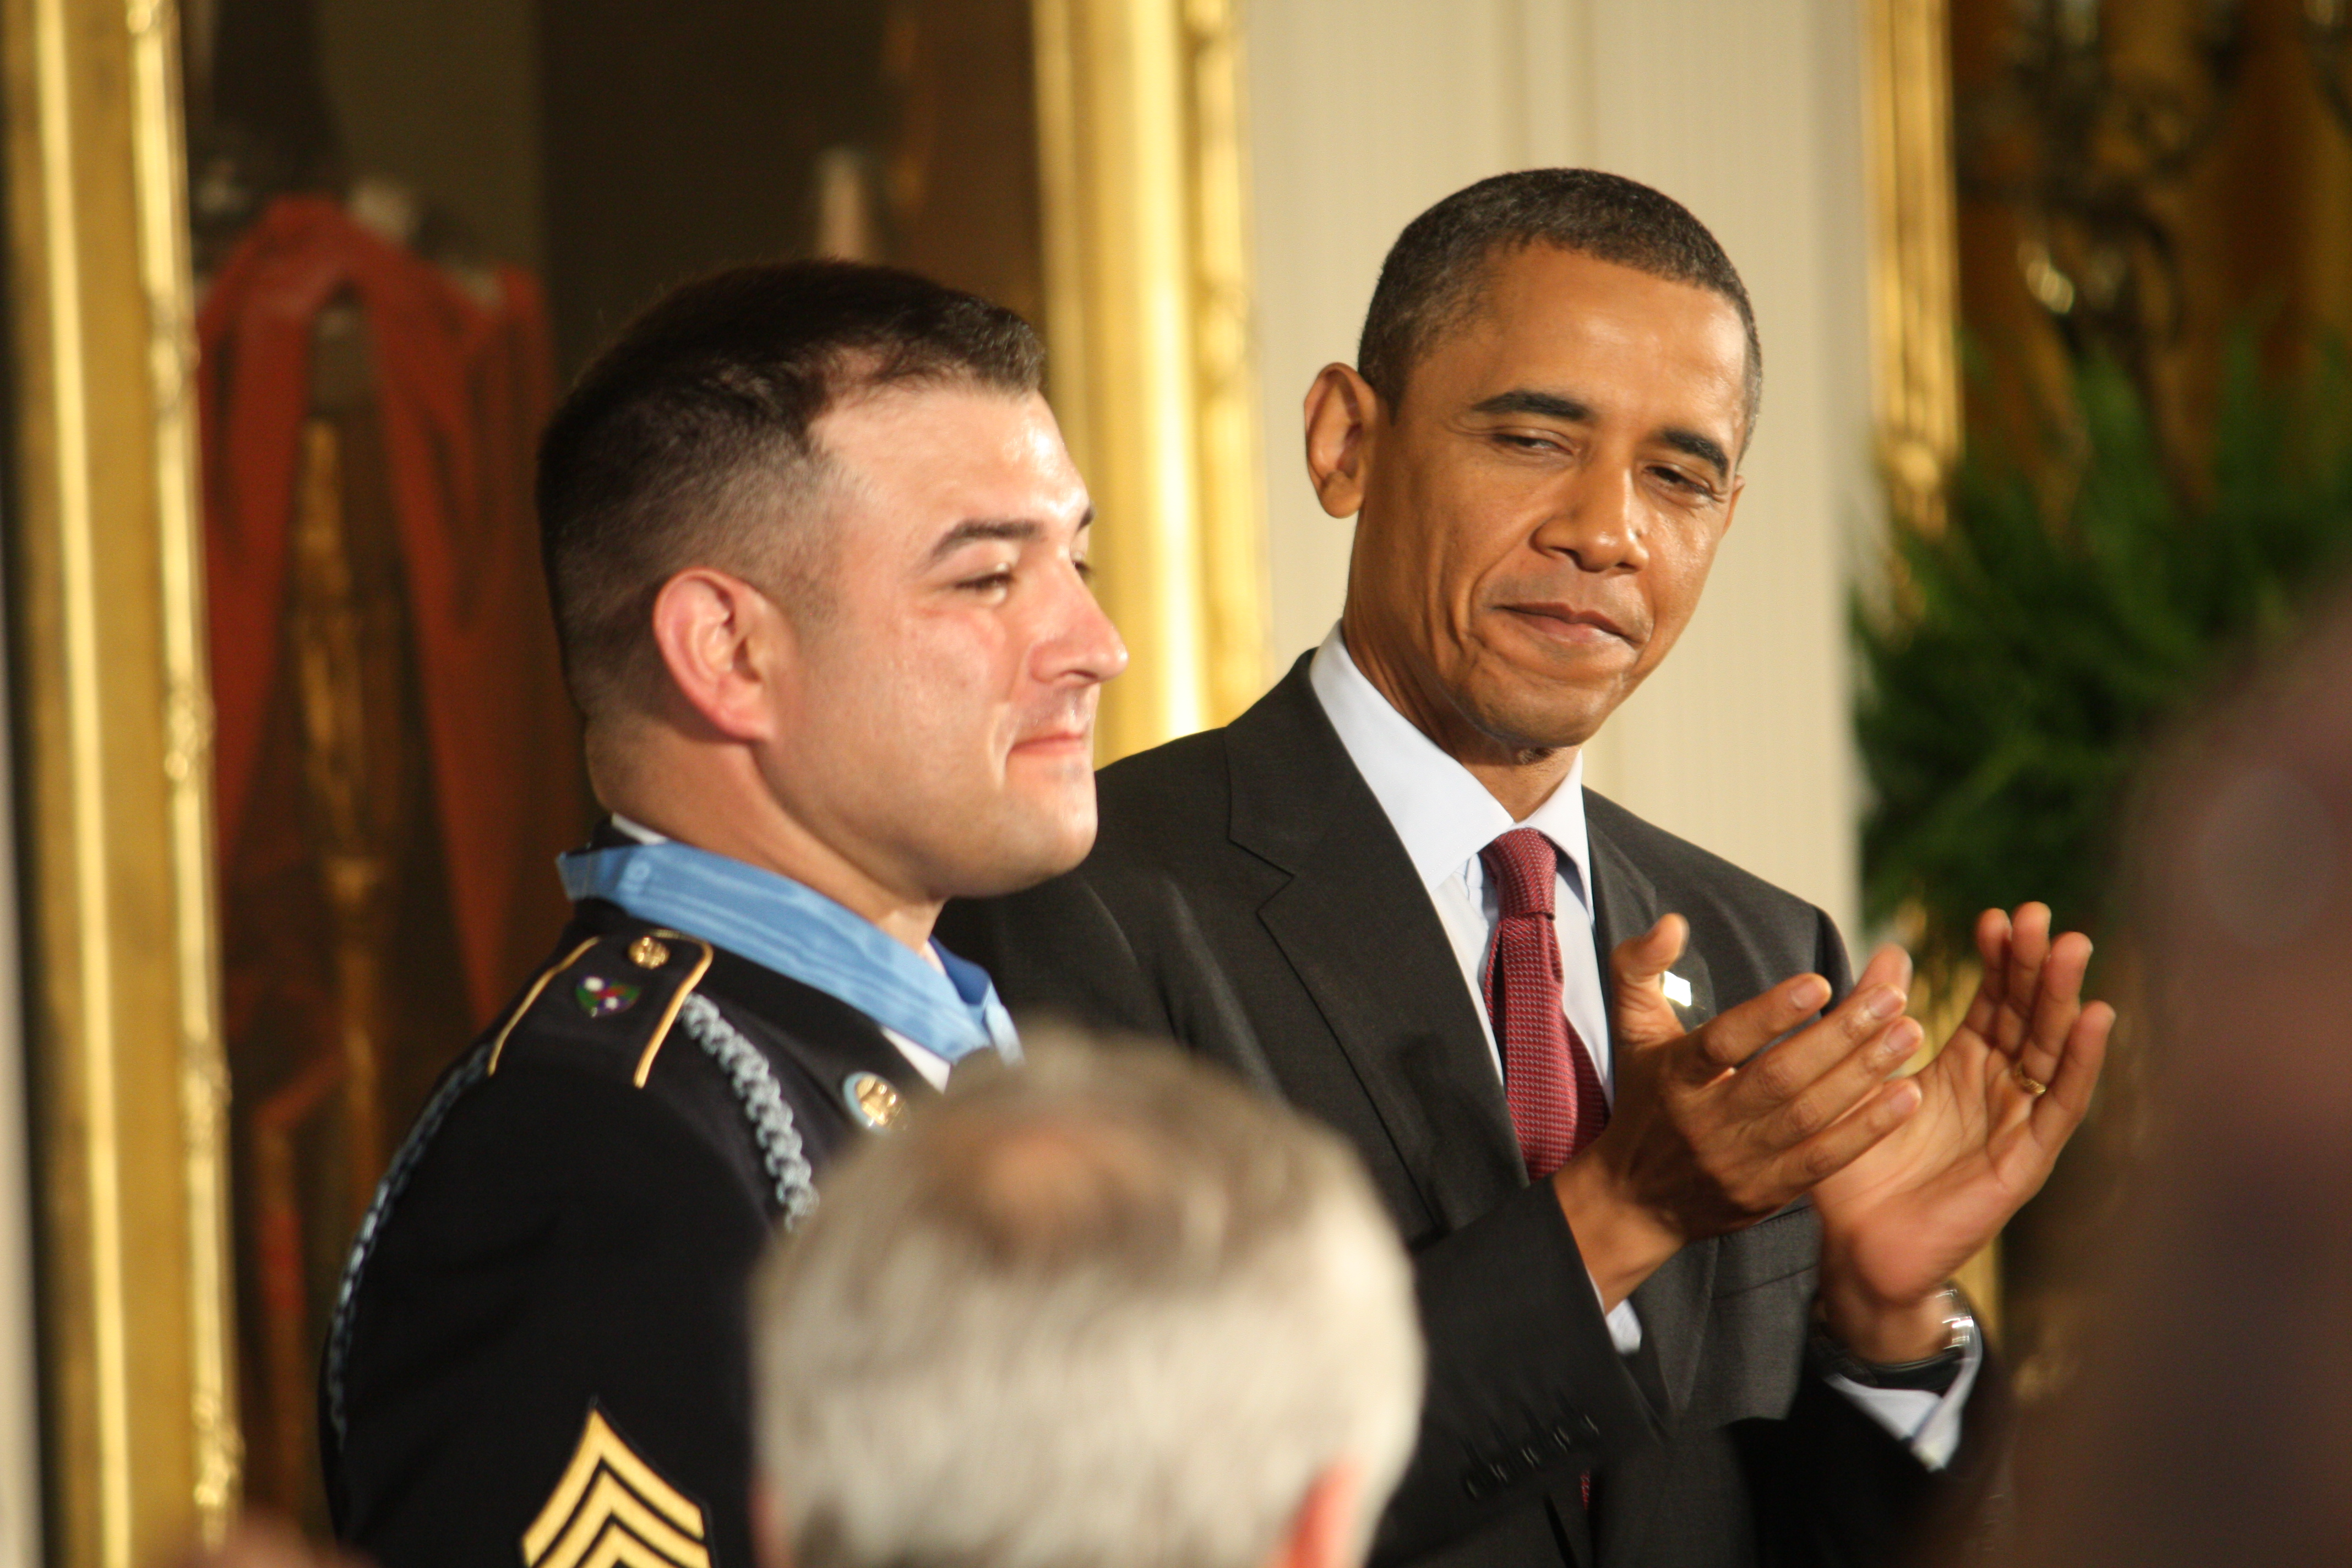 After eight tours of duty and a lost hand, Army Ranger receives Medal of Honor.